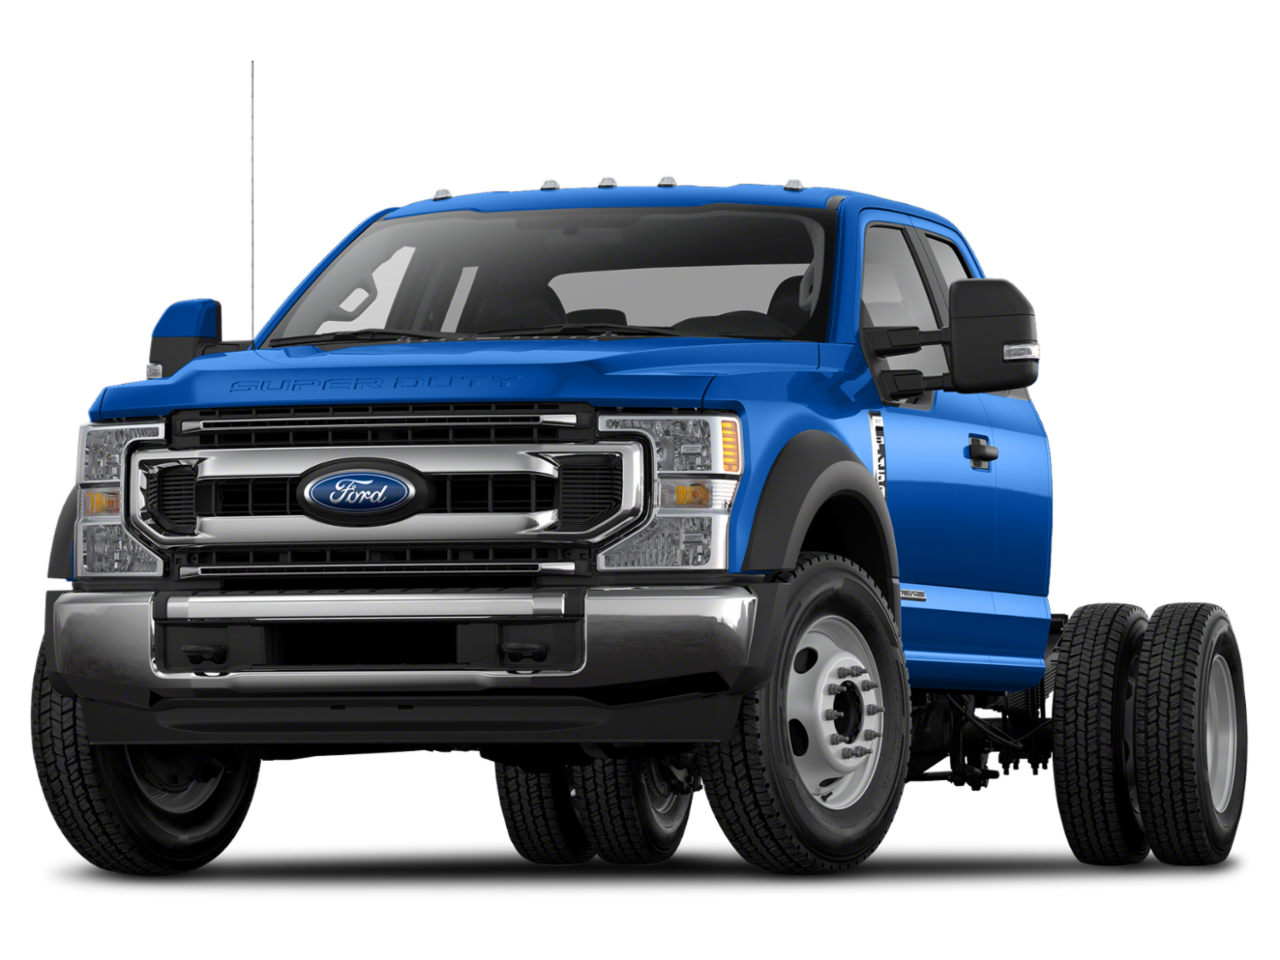 Ford 2020 Super Duty F-350 DRW LARIAT